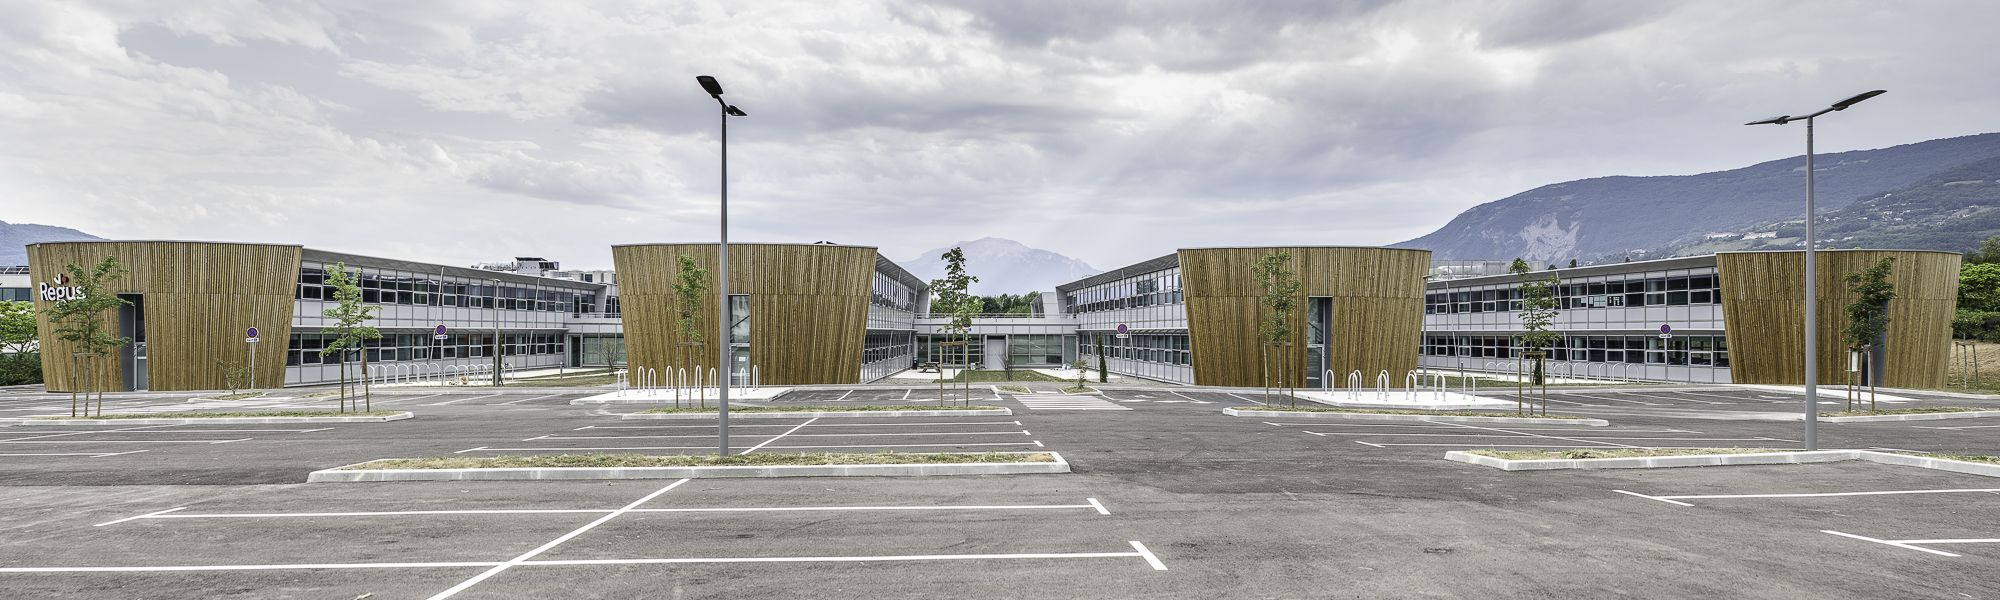 PhilippePERIE_pano-campus